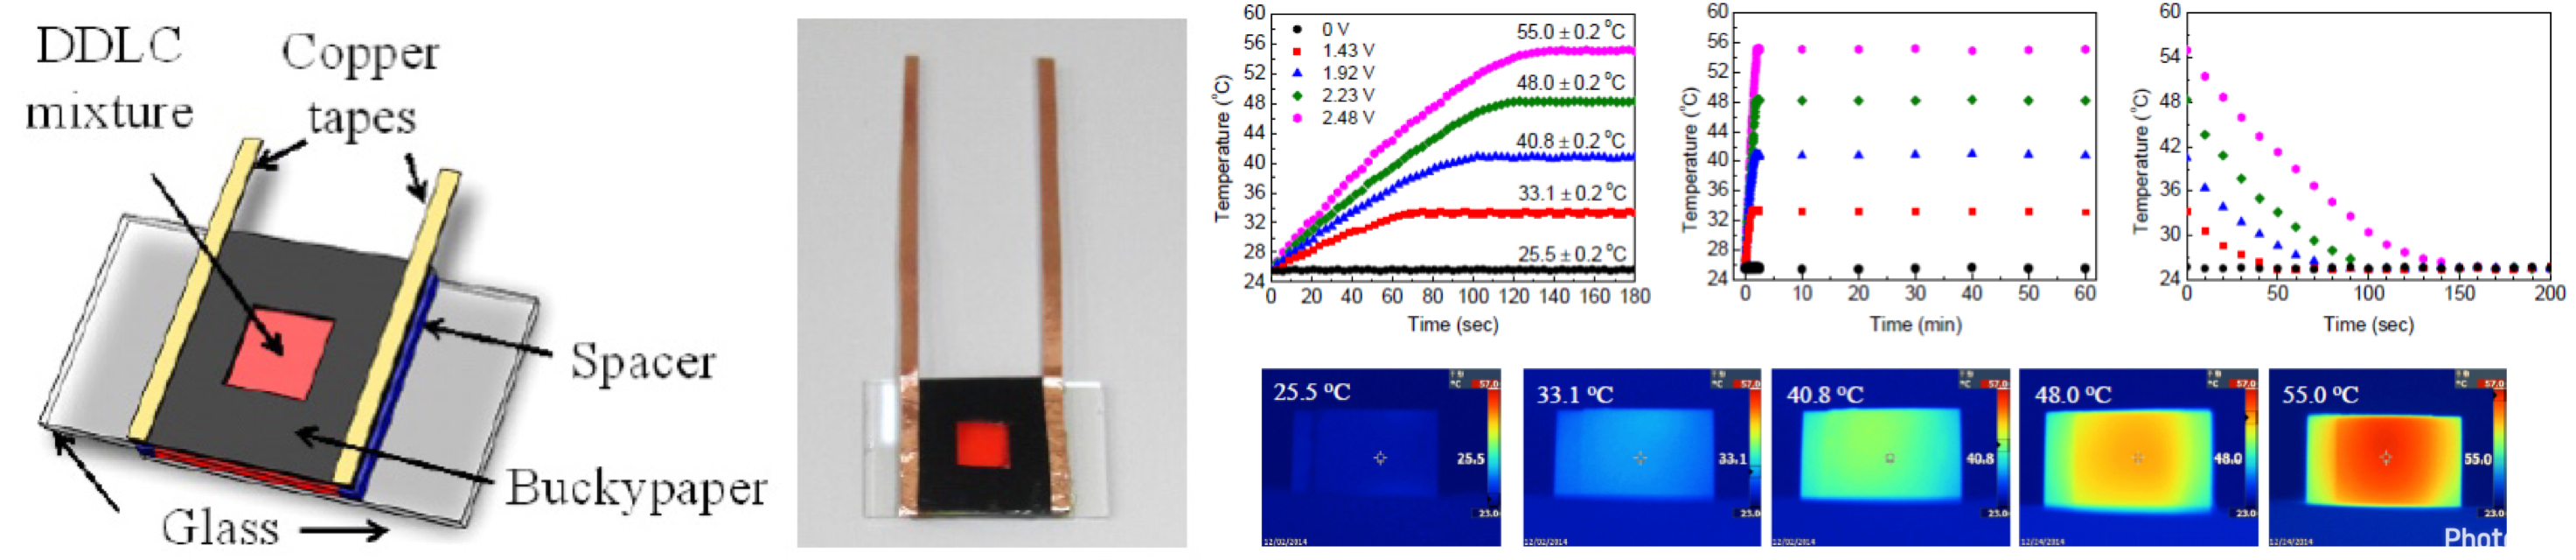 Electrically controllable all-optical switches using dye-doped liquid crystal cells with buckypapers